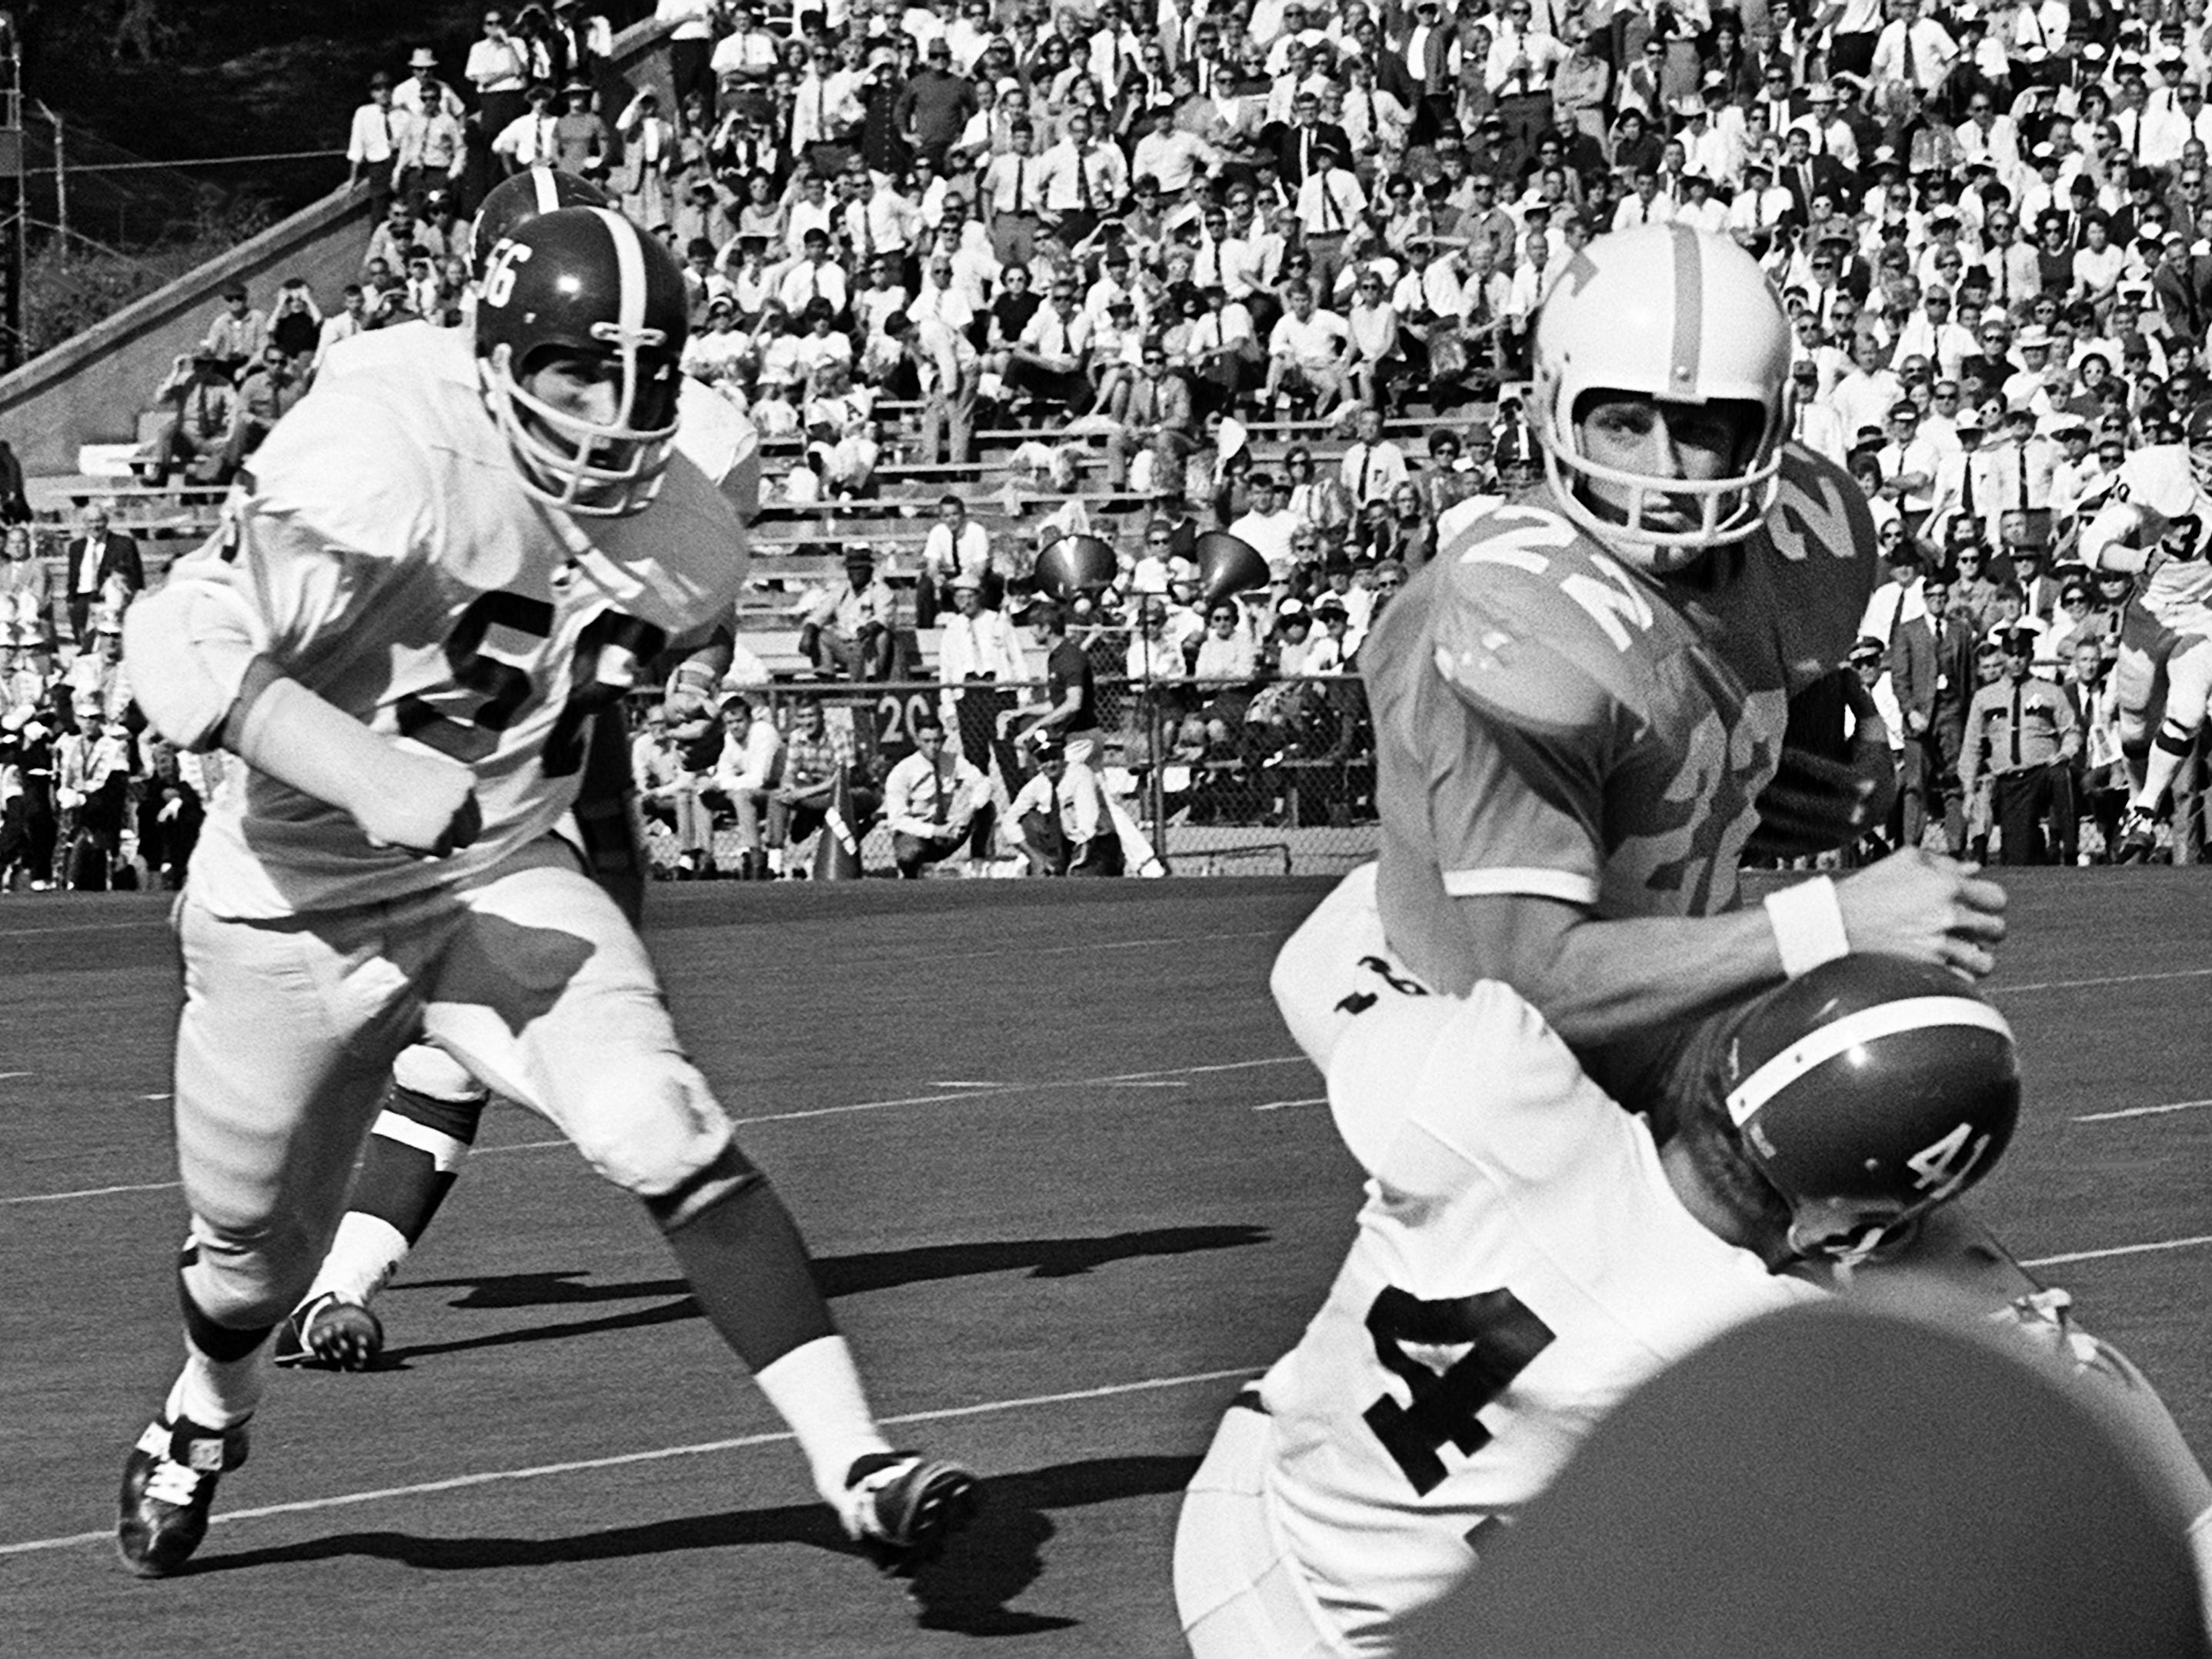 Tennessee senior back Richmond Flowers (22) gets stopped by an Alabama defender before at Neyland Stadium Oct. 19, 1968.